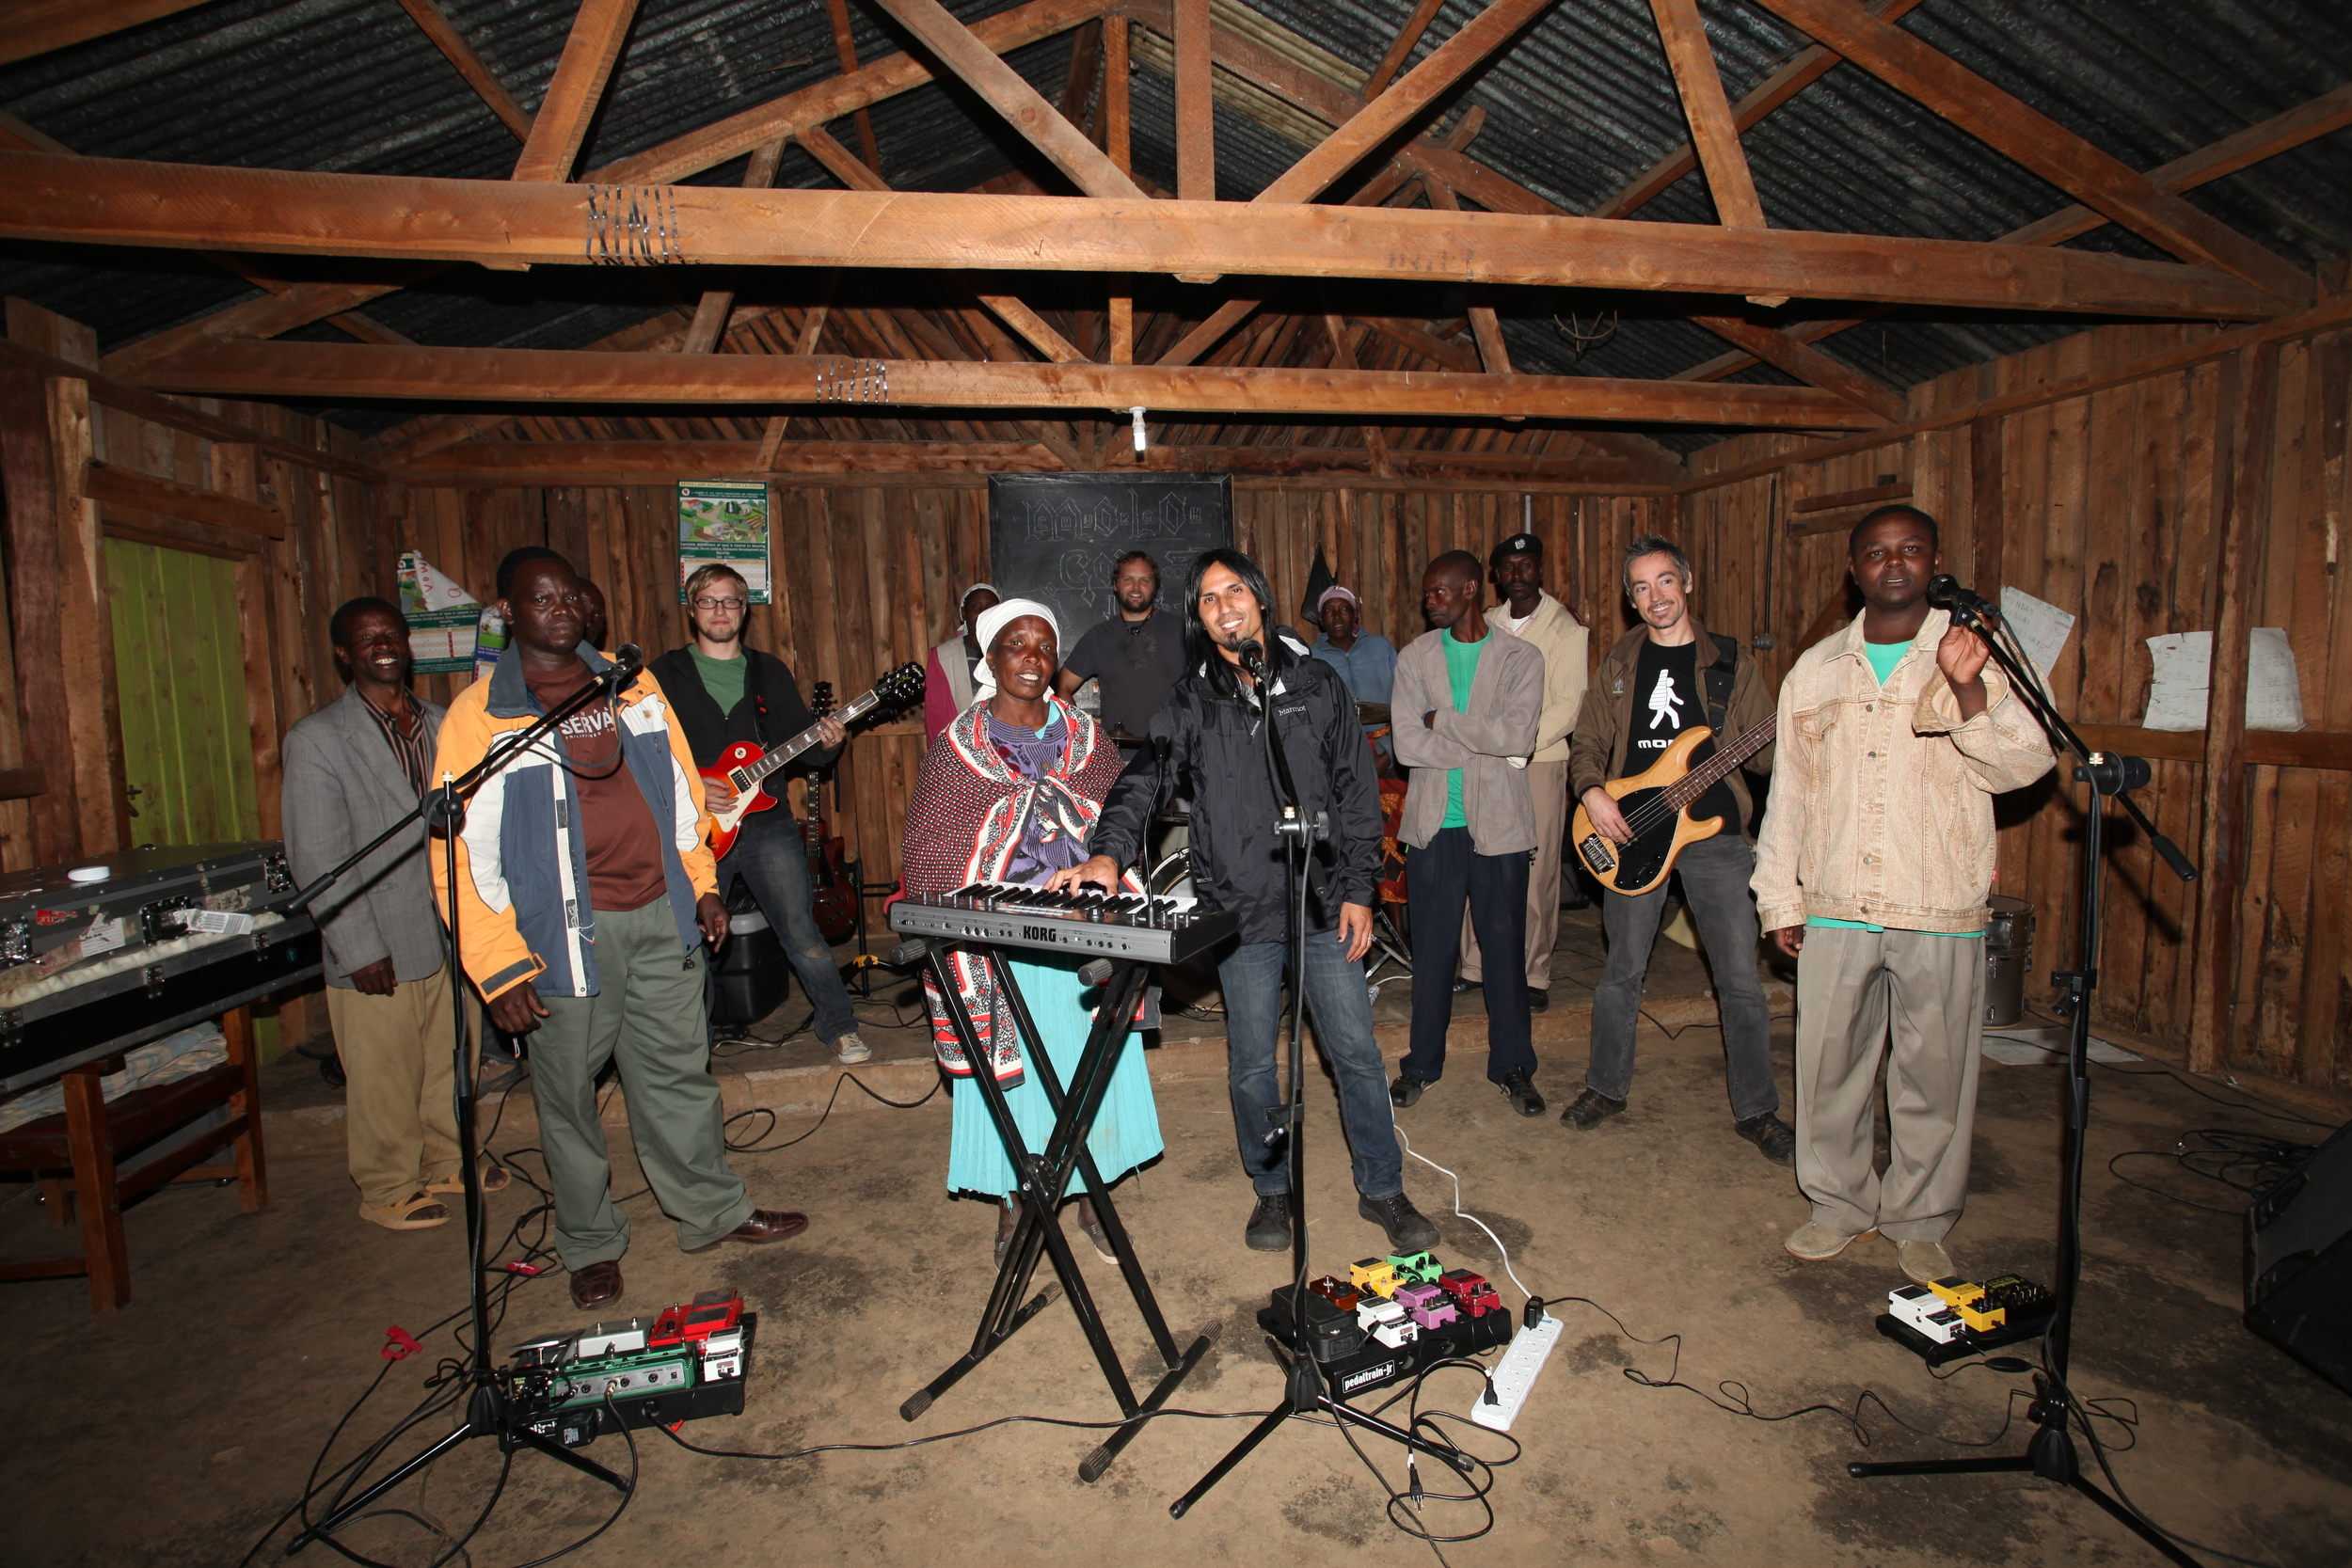 In 2011, this group of Kenyans and Americans put on a concert for the residents of an internally displaced persons (IDP) camp in Molo, Kenya. The residents, victims of post-election violence over 3 years prior, were still suffering its effects. In a small church building with just a gas-powered generator, the music gave way to a very emotional and powerful evening for everyone gathered.